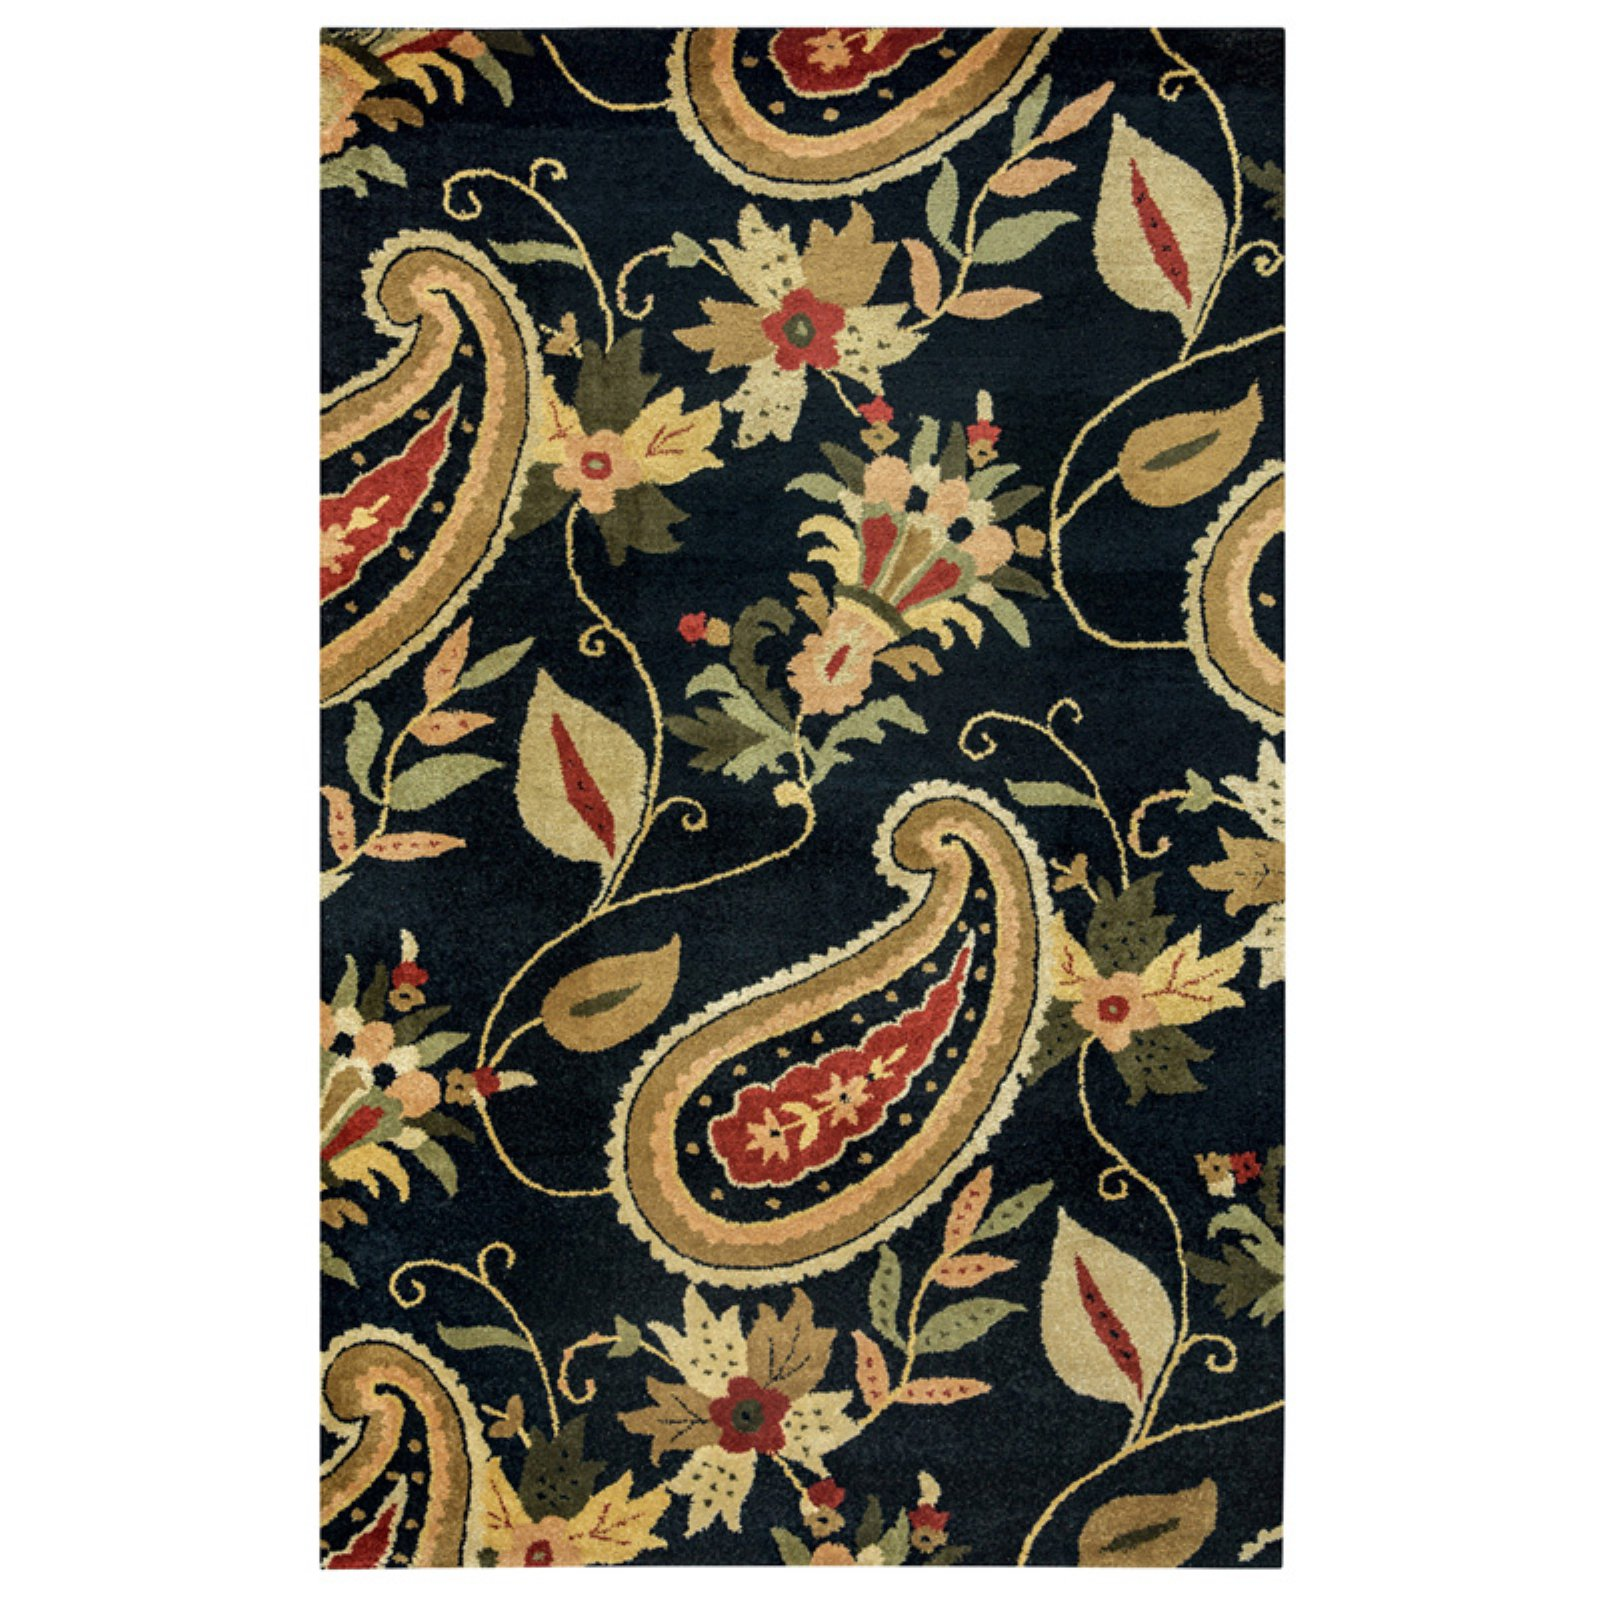 Rizzy Home Destiny DT0920 Rug - (9 Foot x 12 Foot)